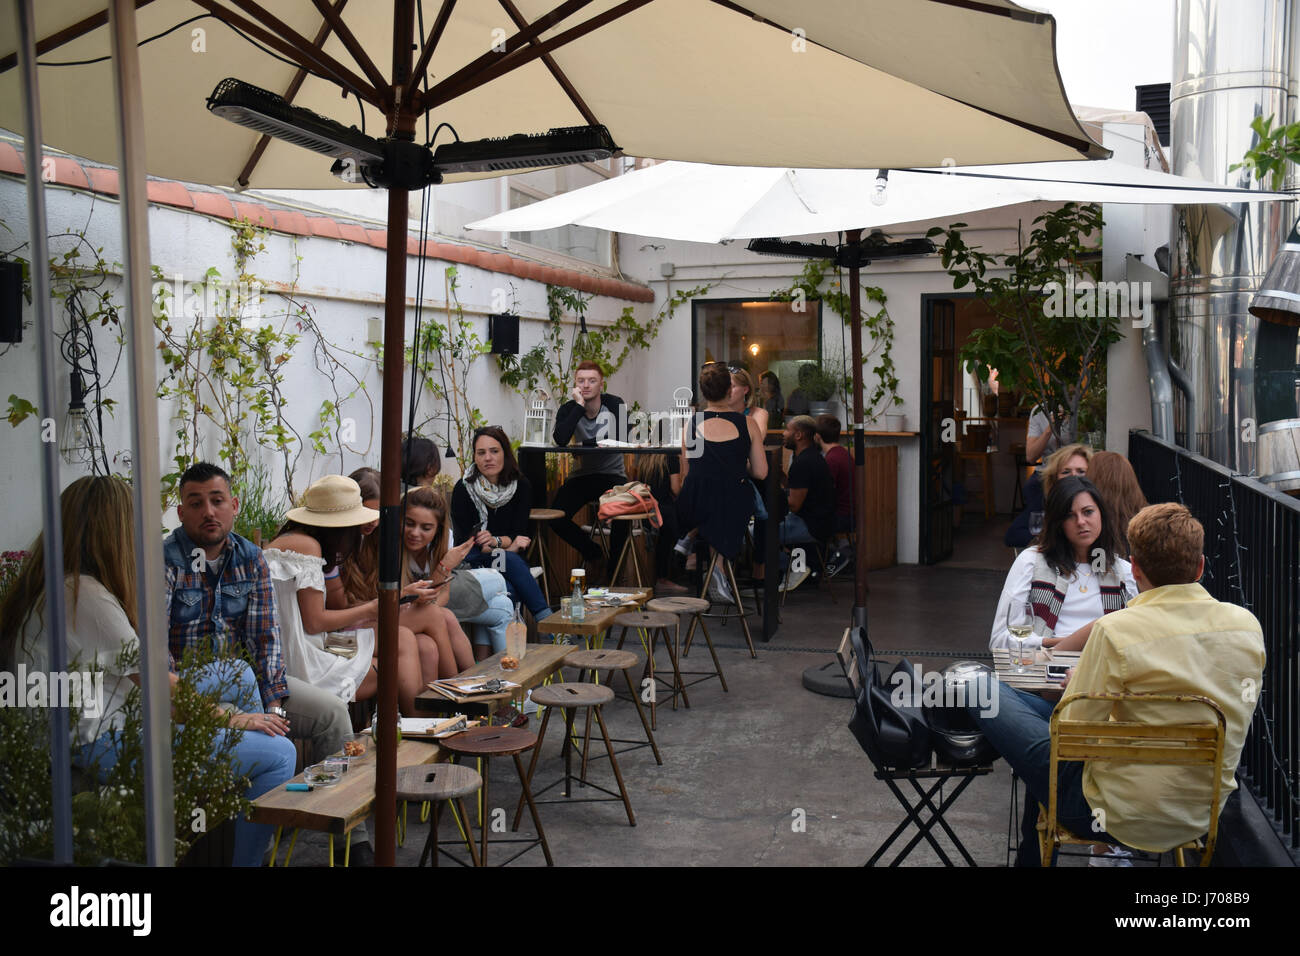 HAT rooftop bar, Madrid, Spain - Stock Image